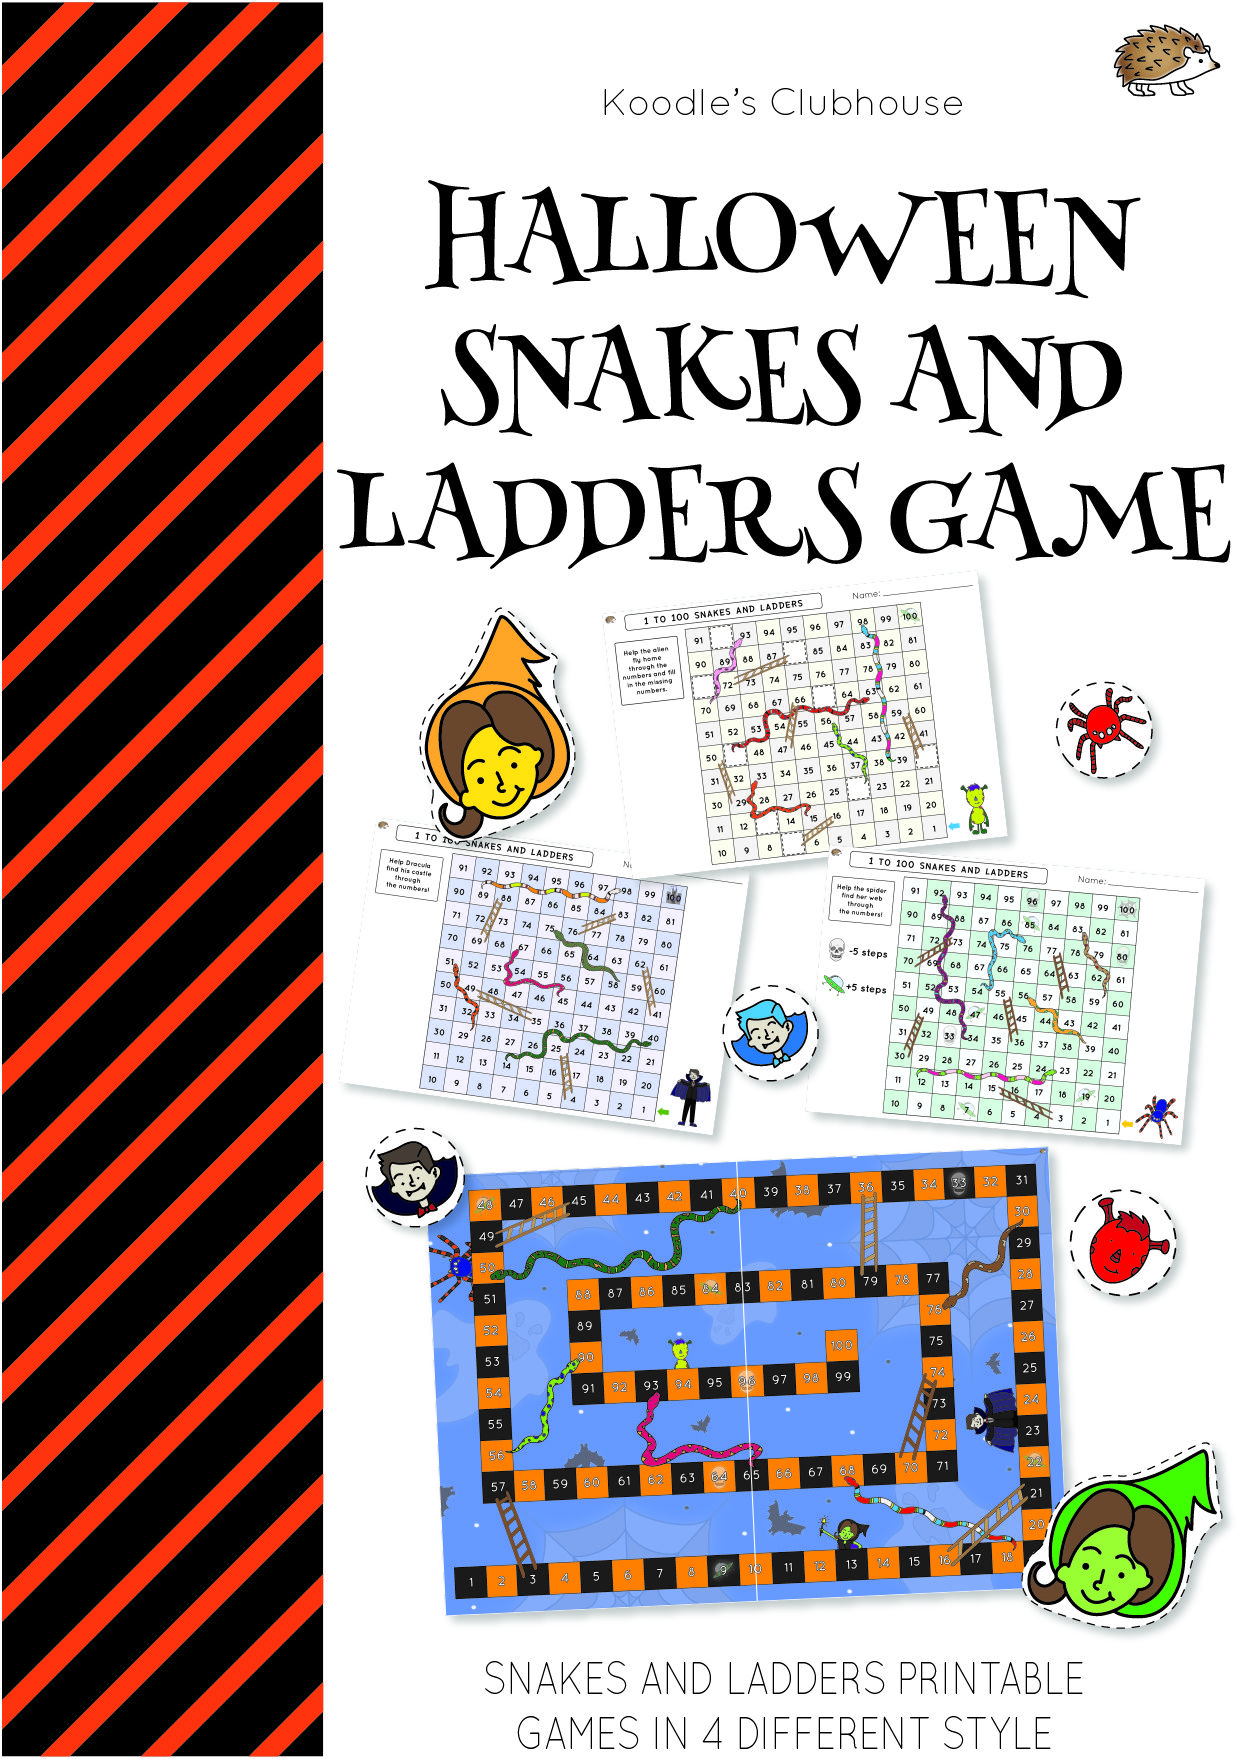 Halloween Snakes And Ladders Game